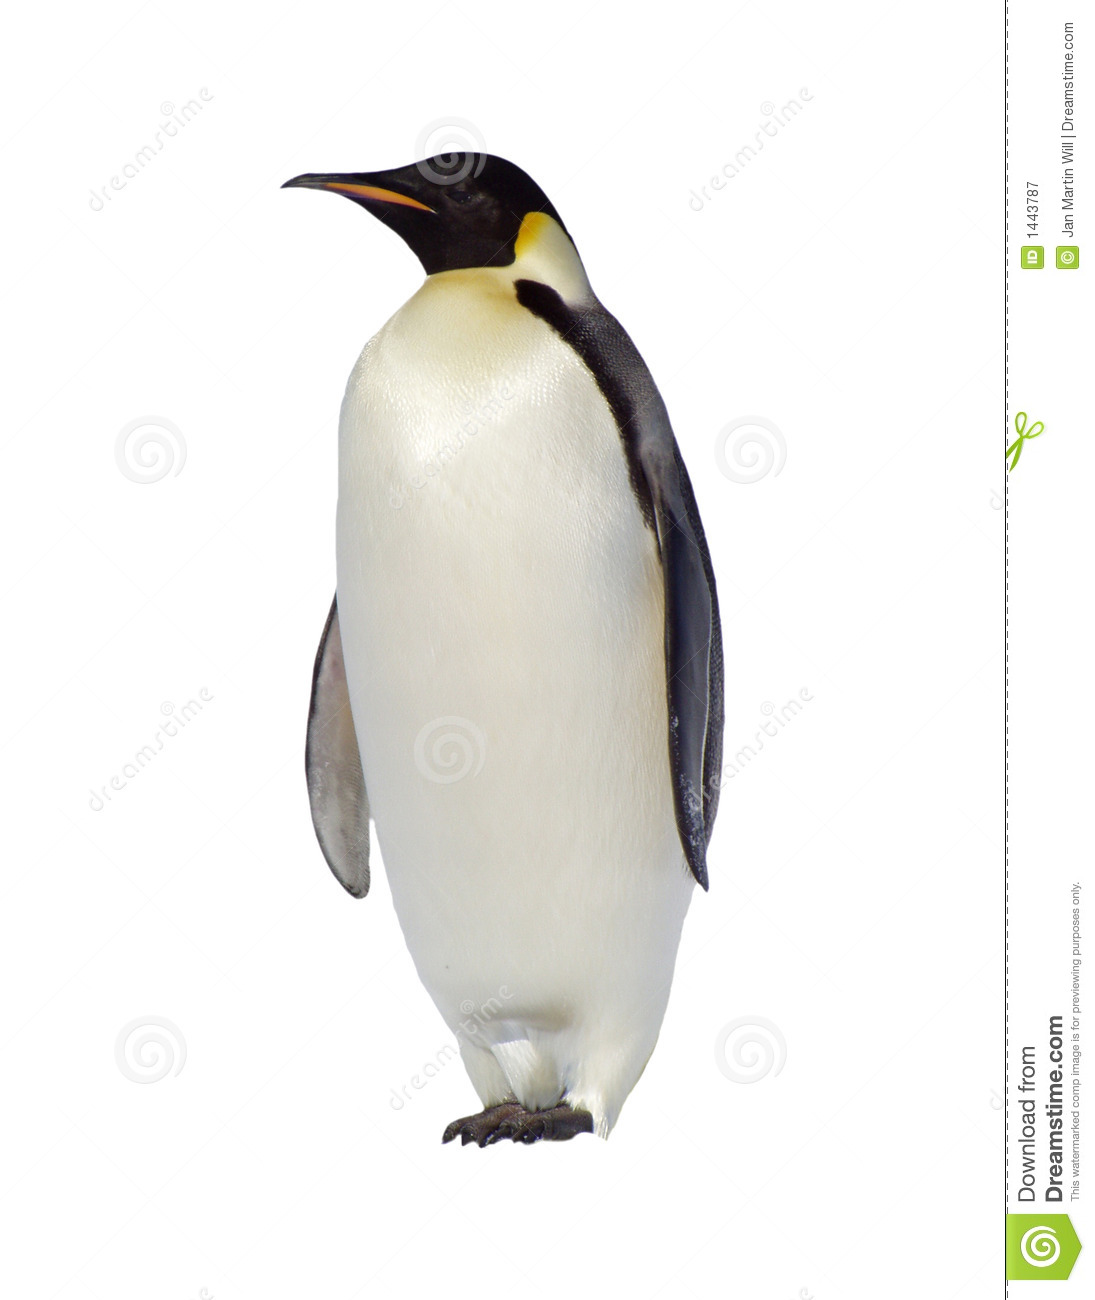 Penguin No Background Clipart.